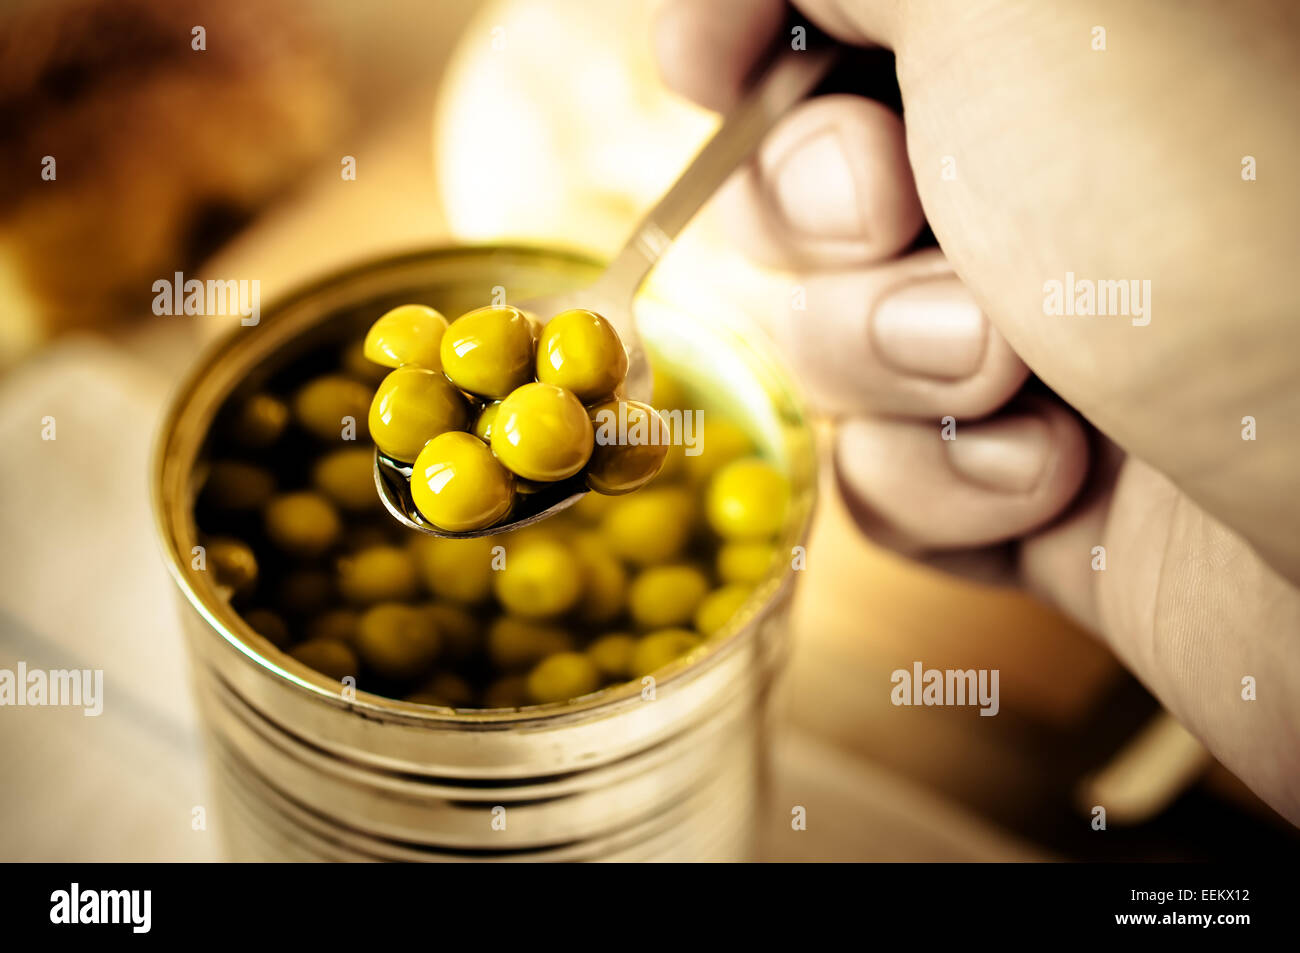 Man with a spoon takes canned peas - Stock Image